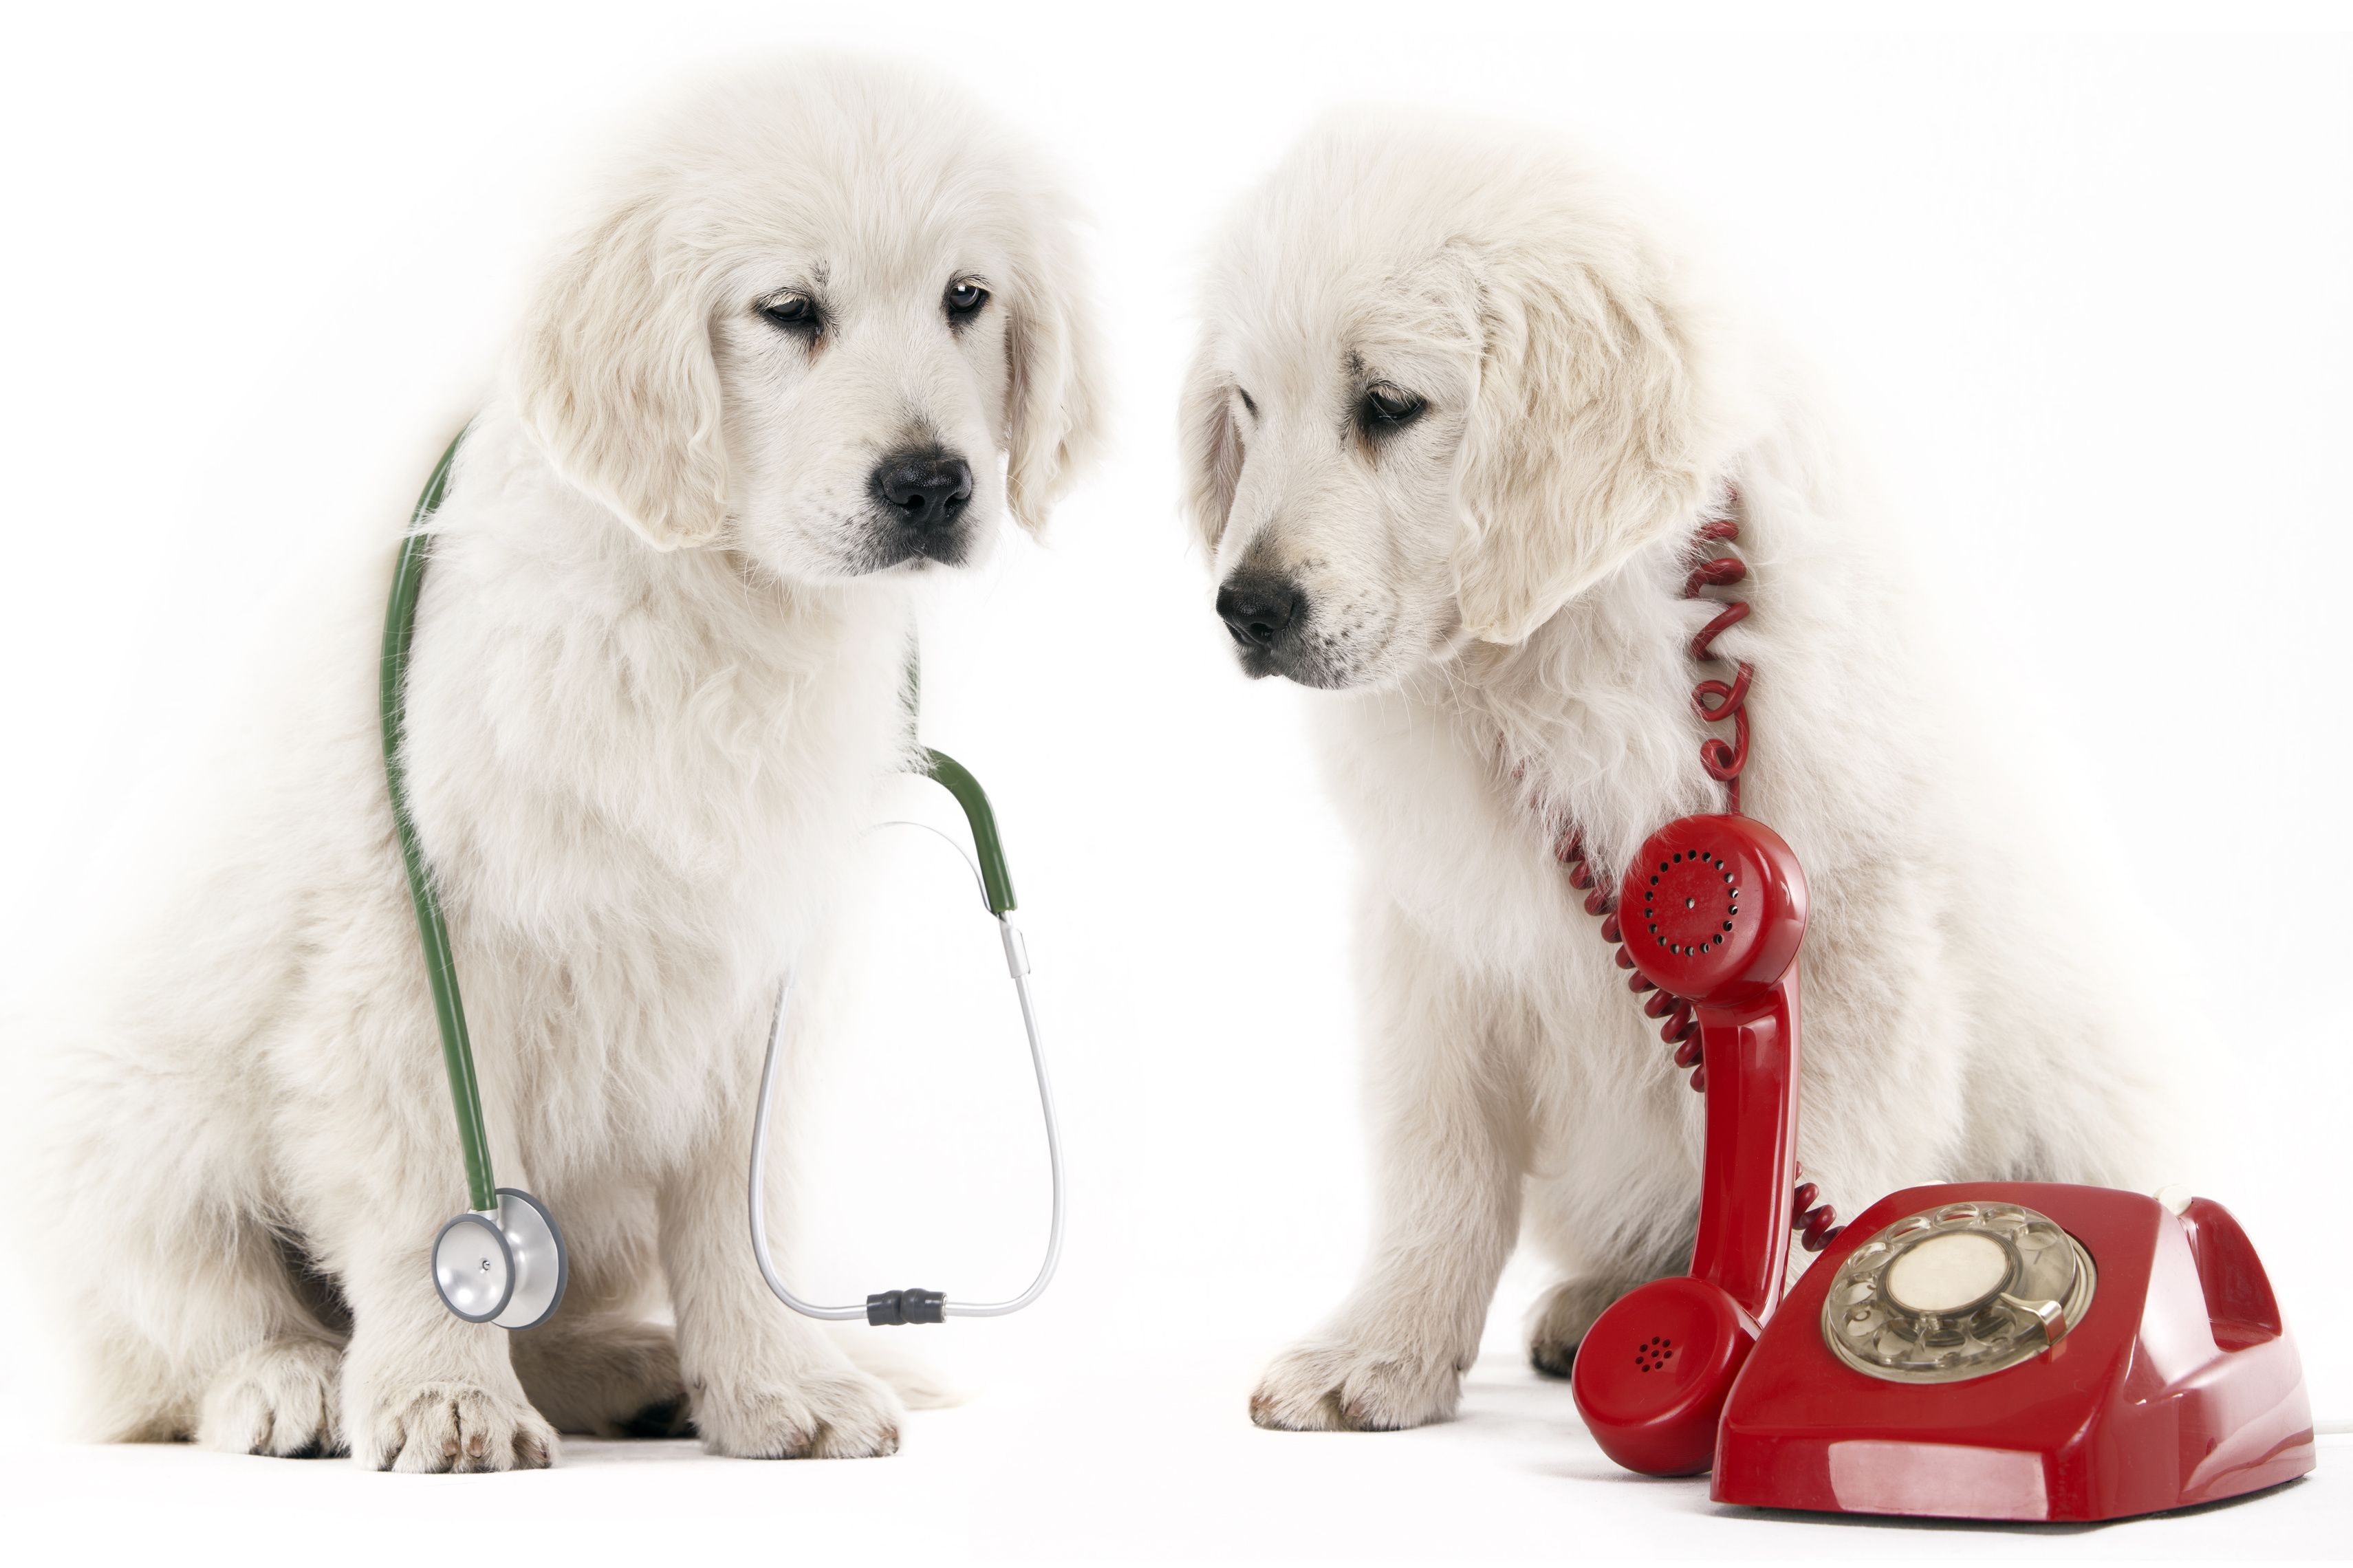 Dogged by high phone costs? Let Fido give you a free health check today